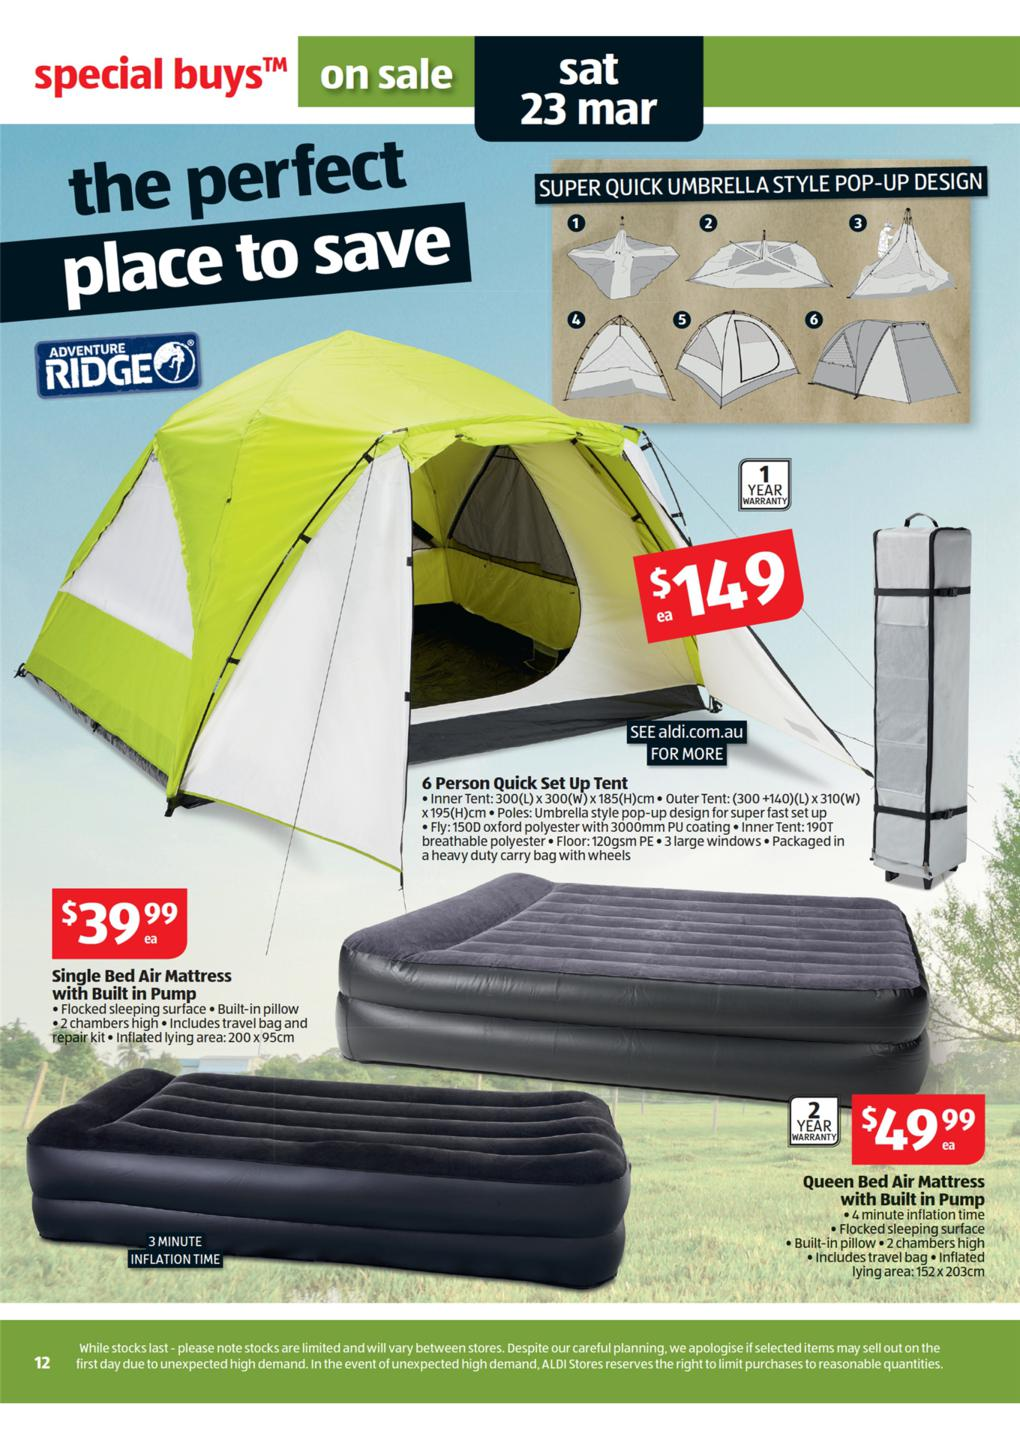 ALDI Catalogue - Special Buys Week 12 2013 queen bed air mattress with built  in pump